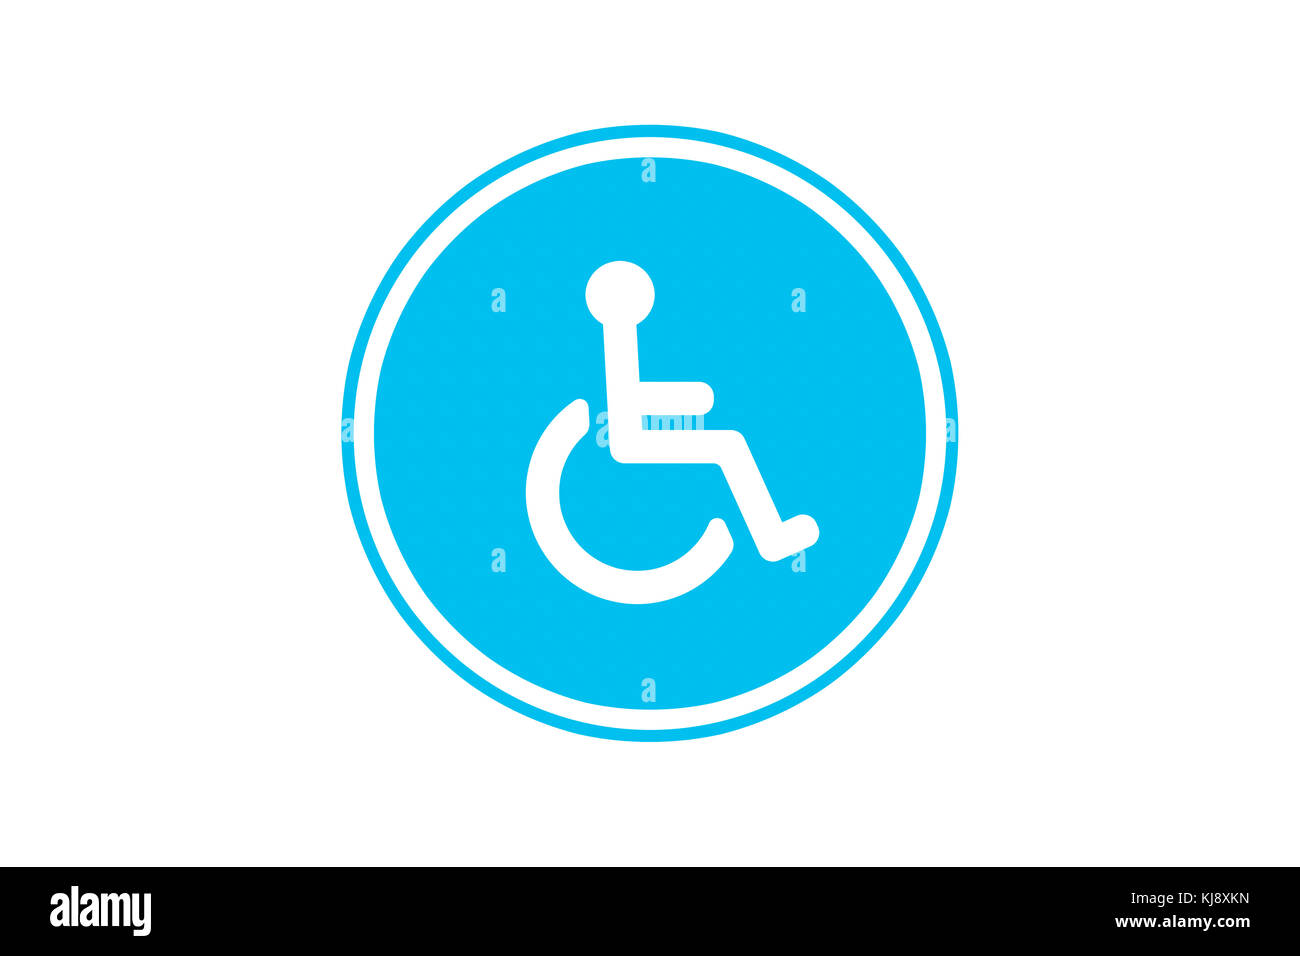 View of disabled wheel chair person sign for handicap parking area, isolated on white background. - Stock Image